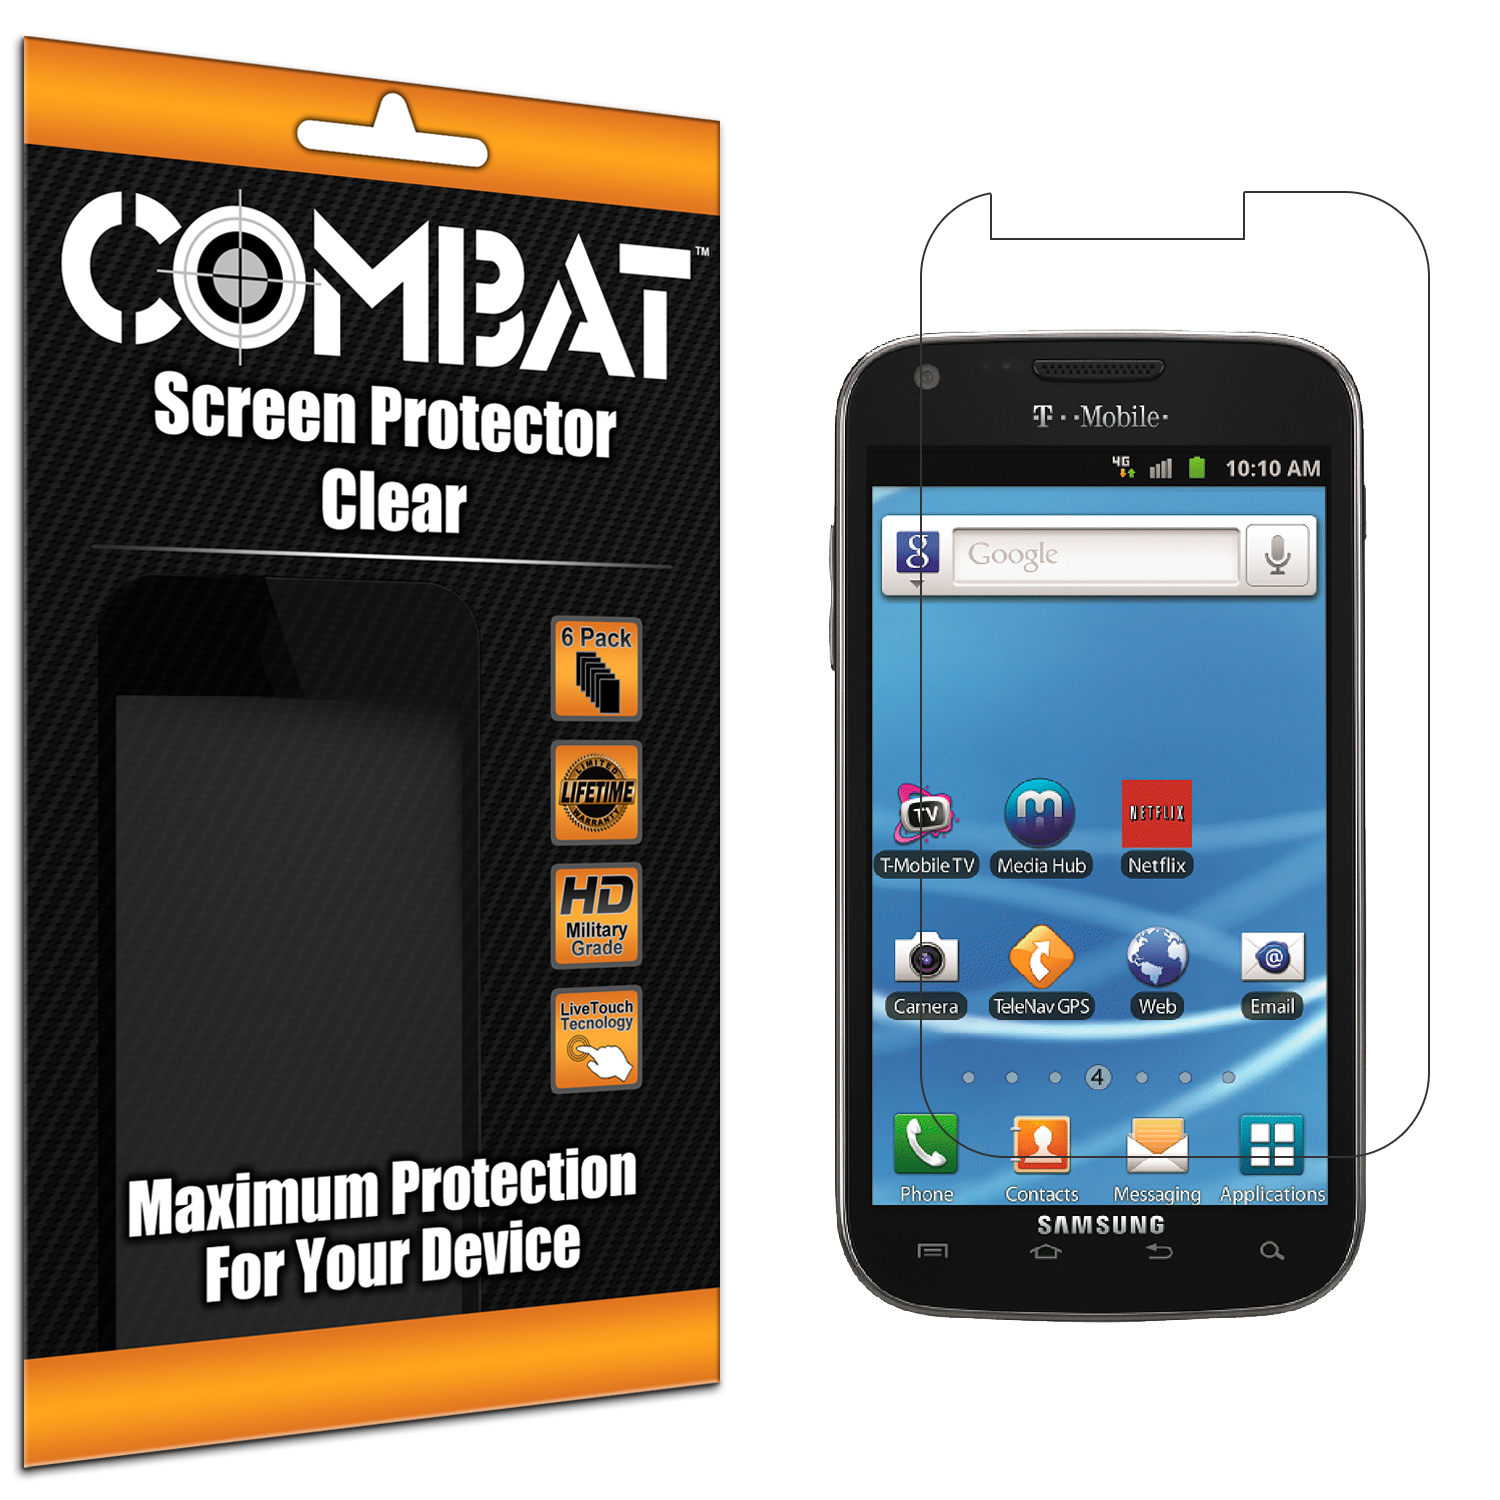 Samsung Hercules T989 T-Mobile Galaxy S2 Combat 6 Pack HD Clear Screen Protector